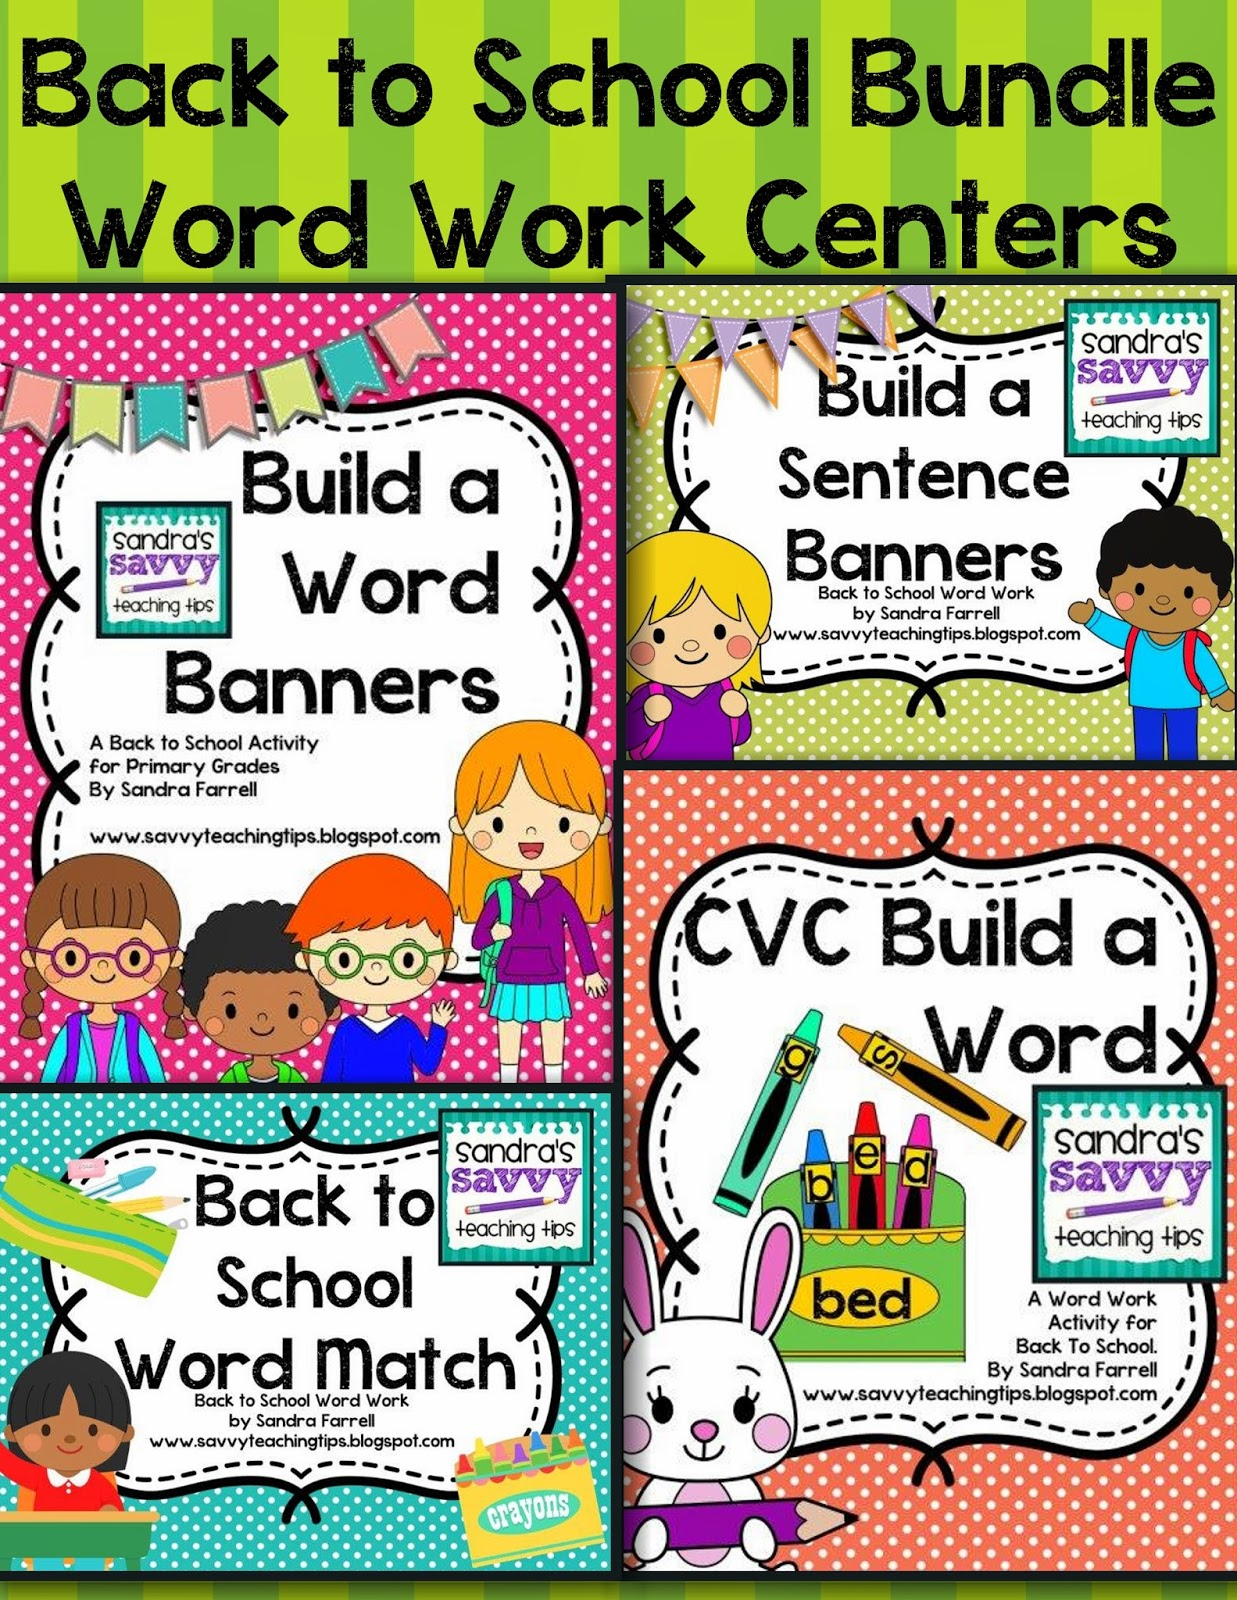 These Word Word Centers are perfect for Kindergarten and First Grade.  My favorite are the Build a Word Banners